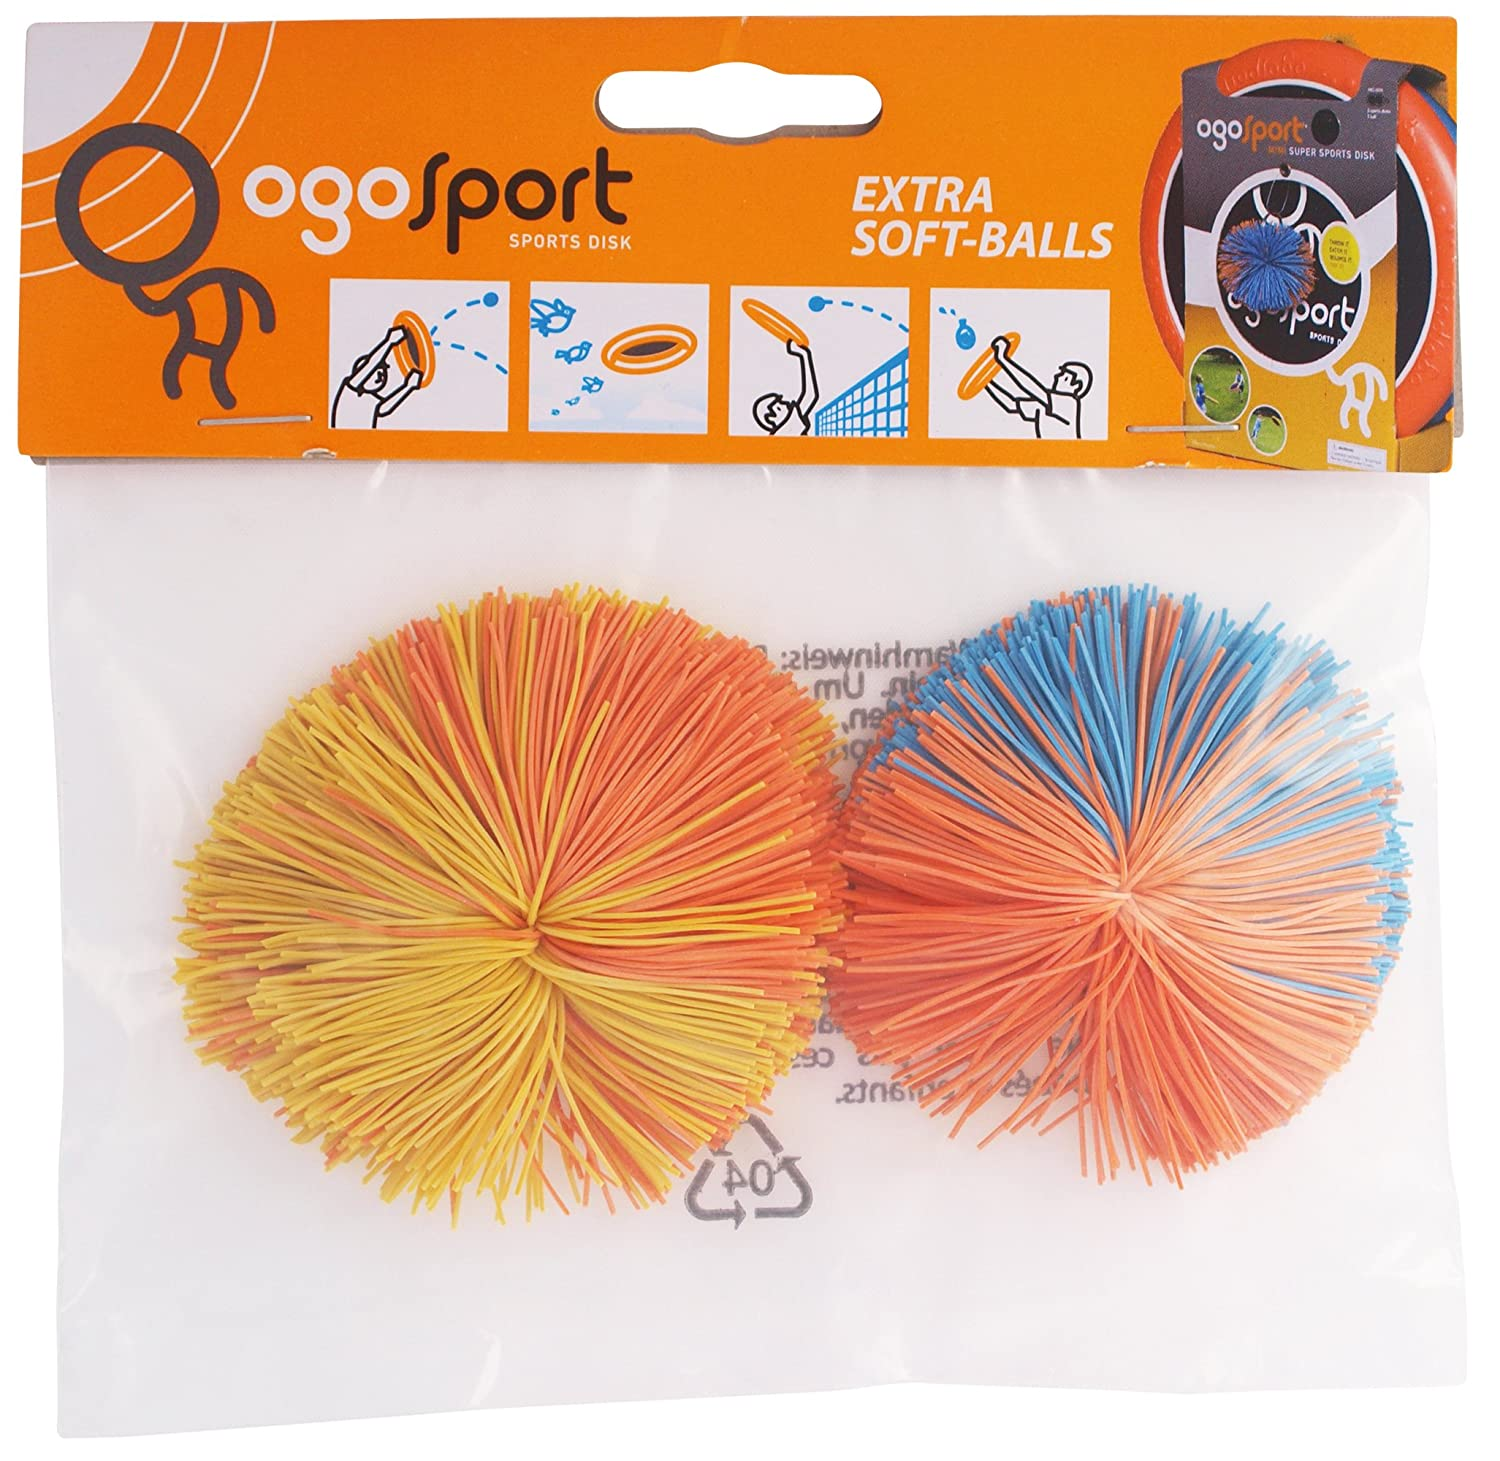 Ogo Sports Replacement Balls Pack of 2 Ogo Sport Spareballs 2 pcs.